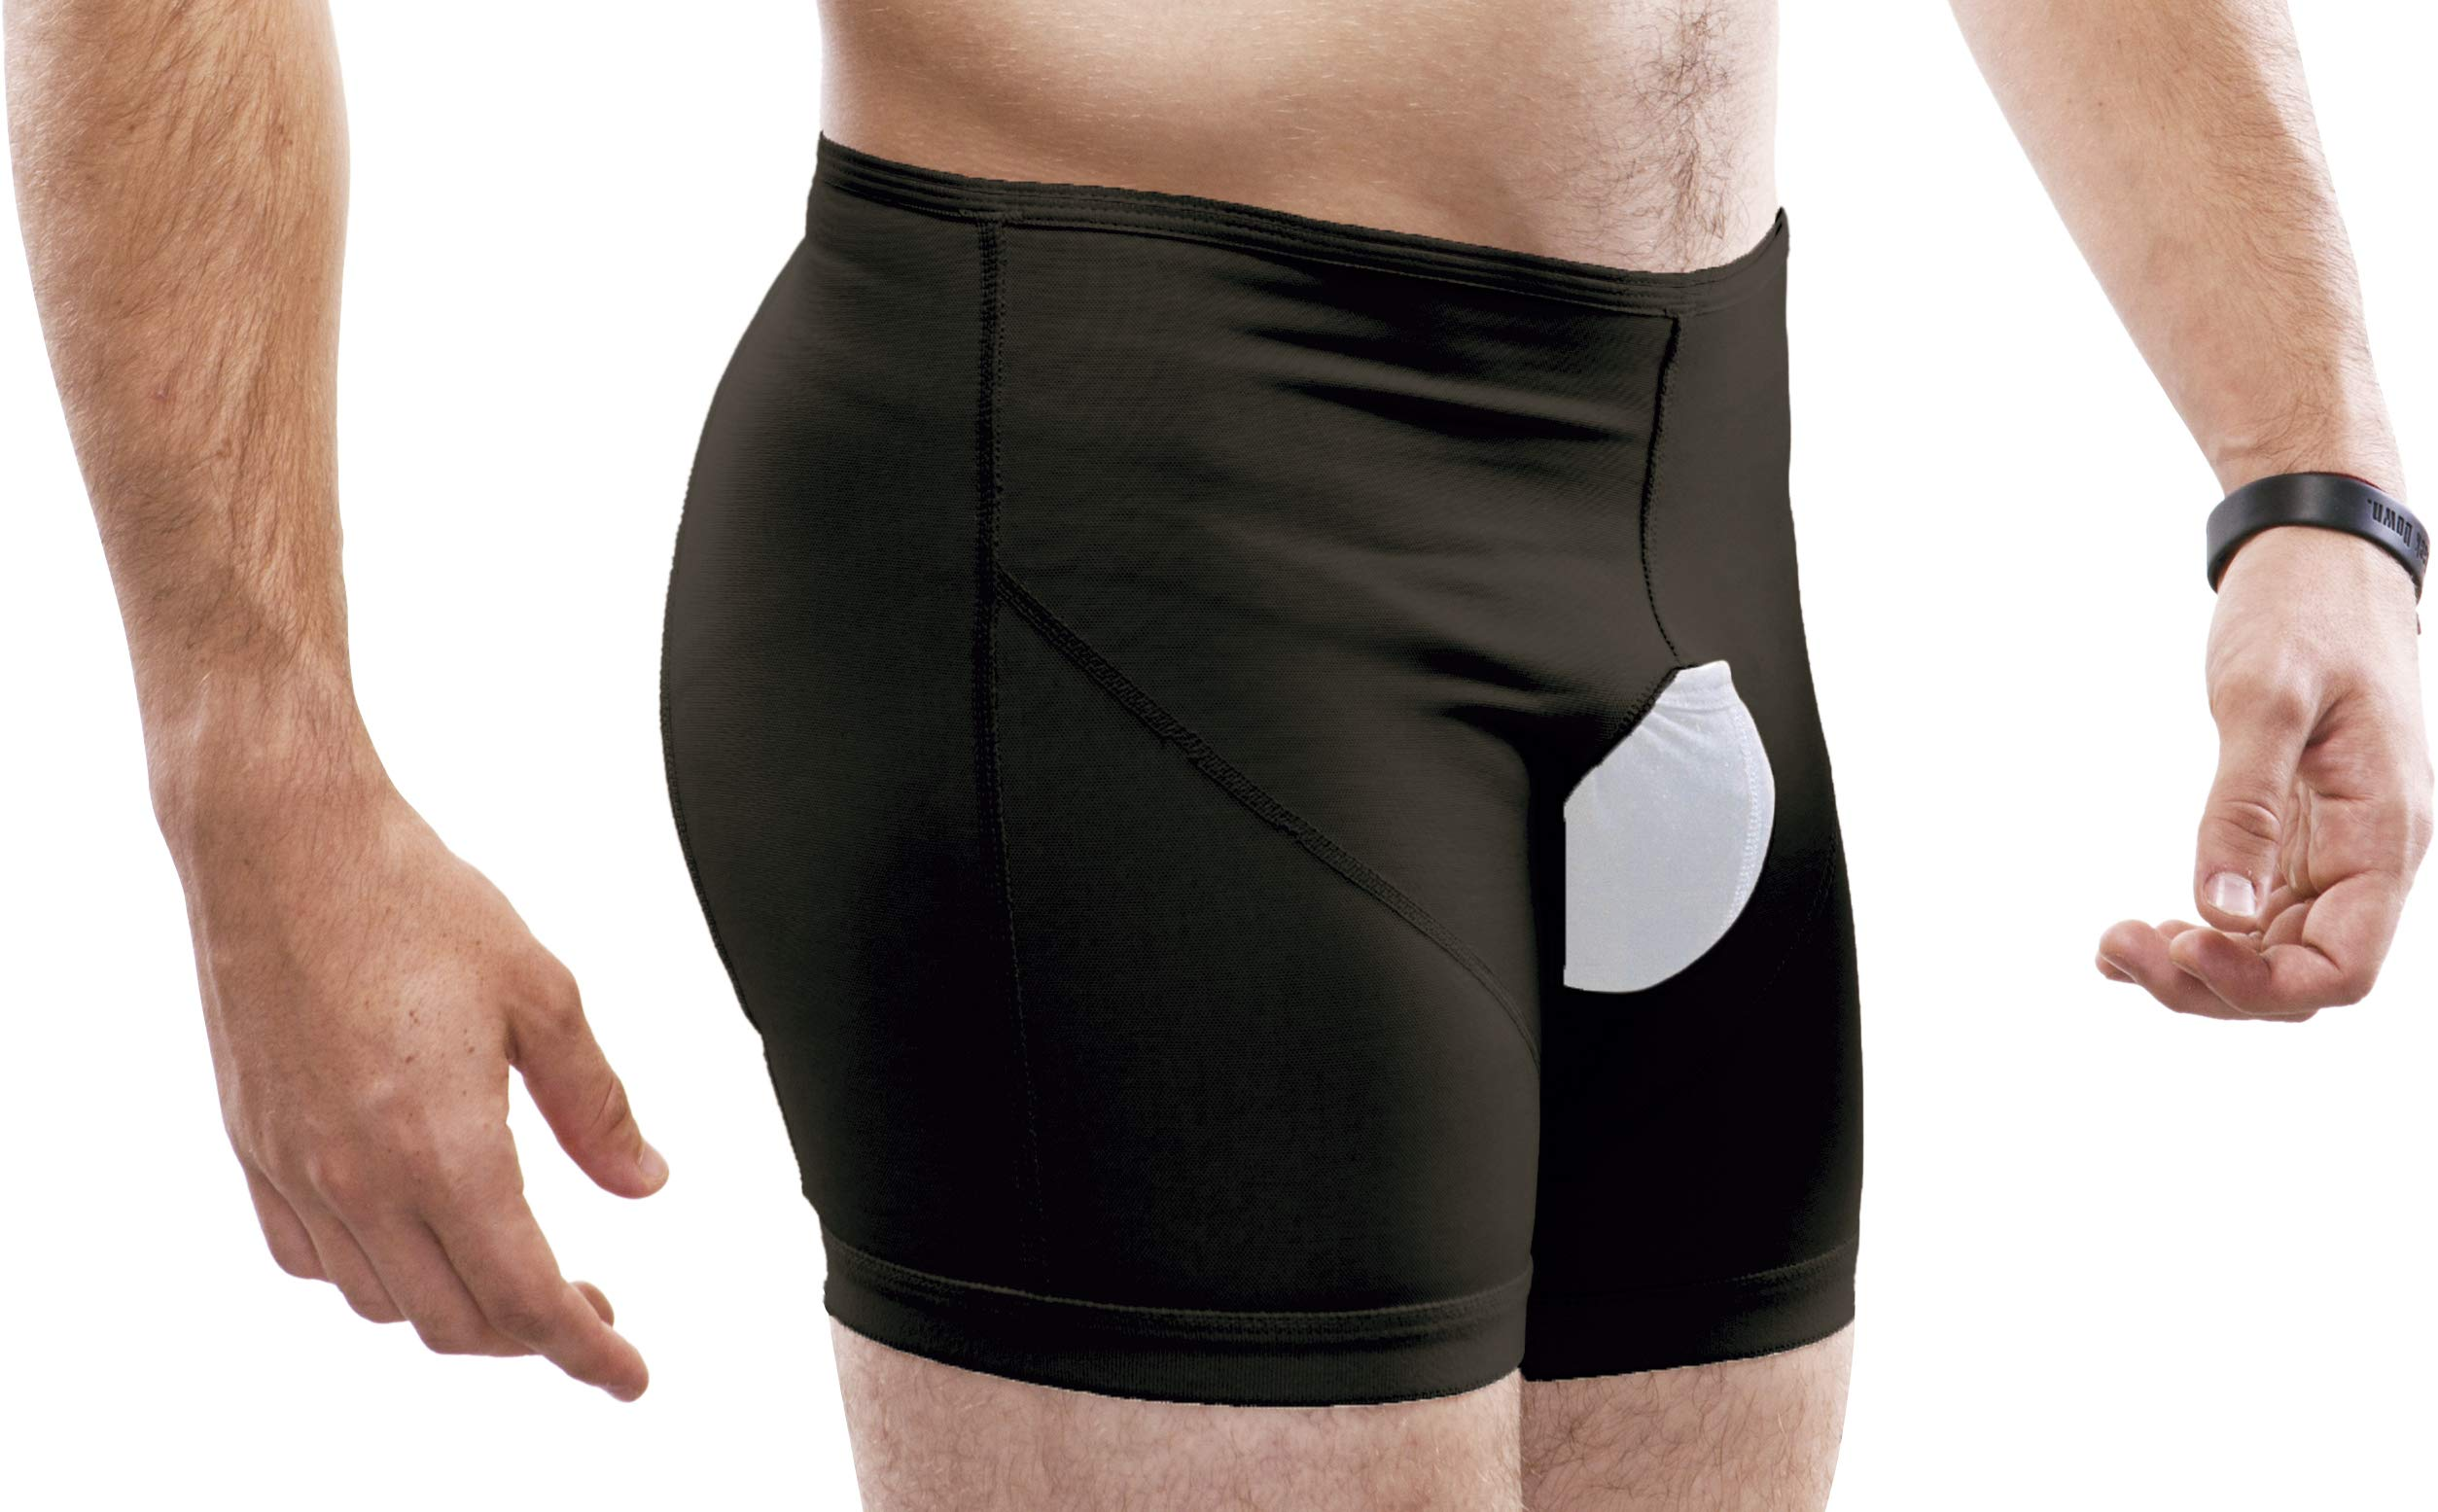 Inguinal Hernia Support Belt Invisible Underpants Compression Garment Truss Galess (Black, XS)